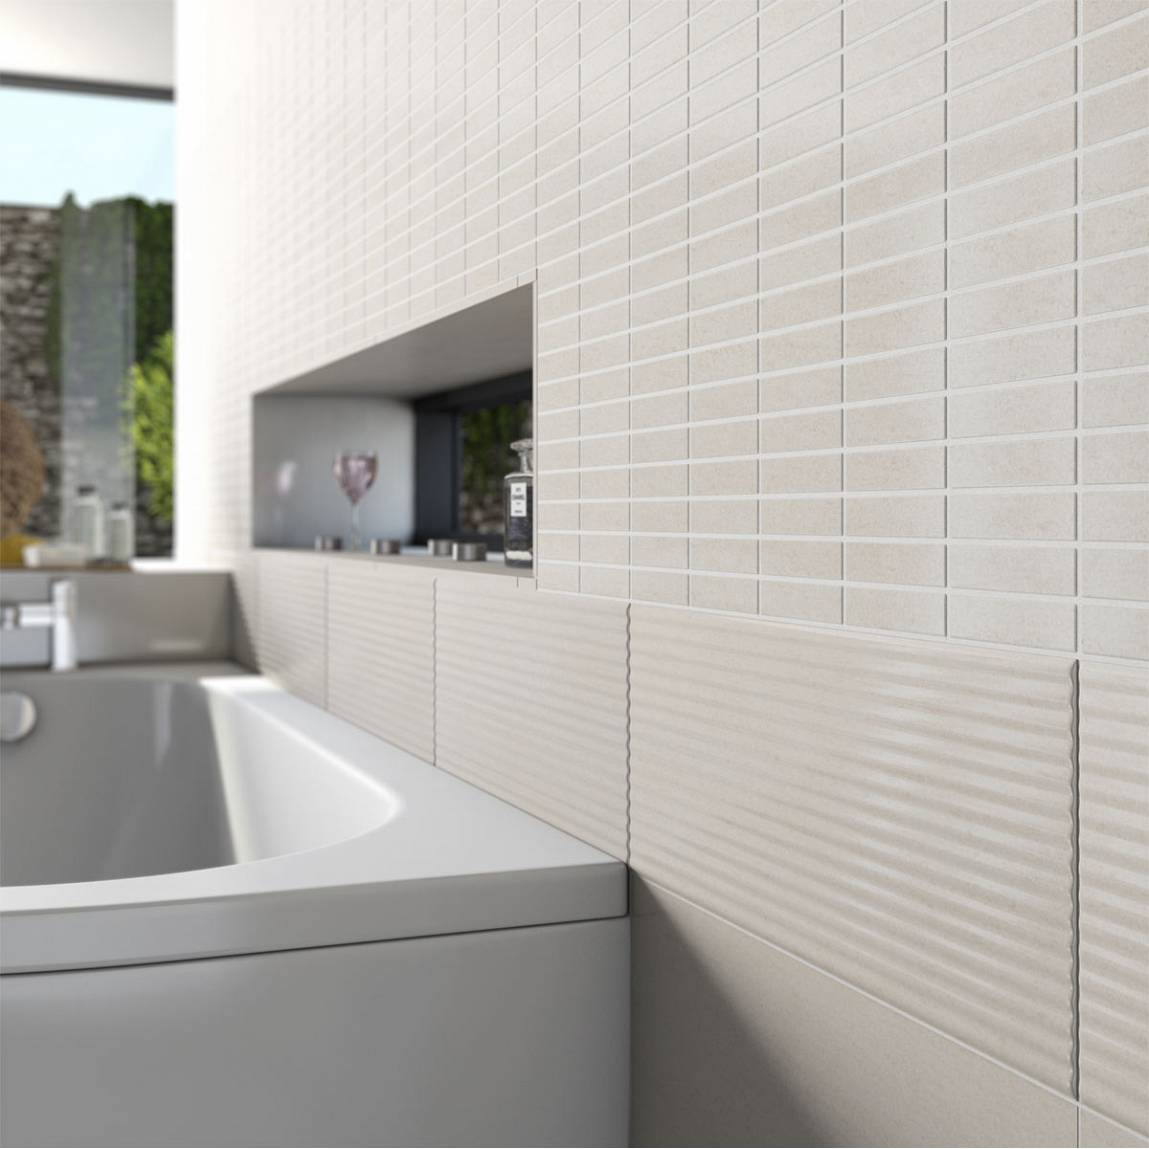 Choosing Bathroom Tiles | VictoriaPlum.com